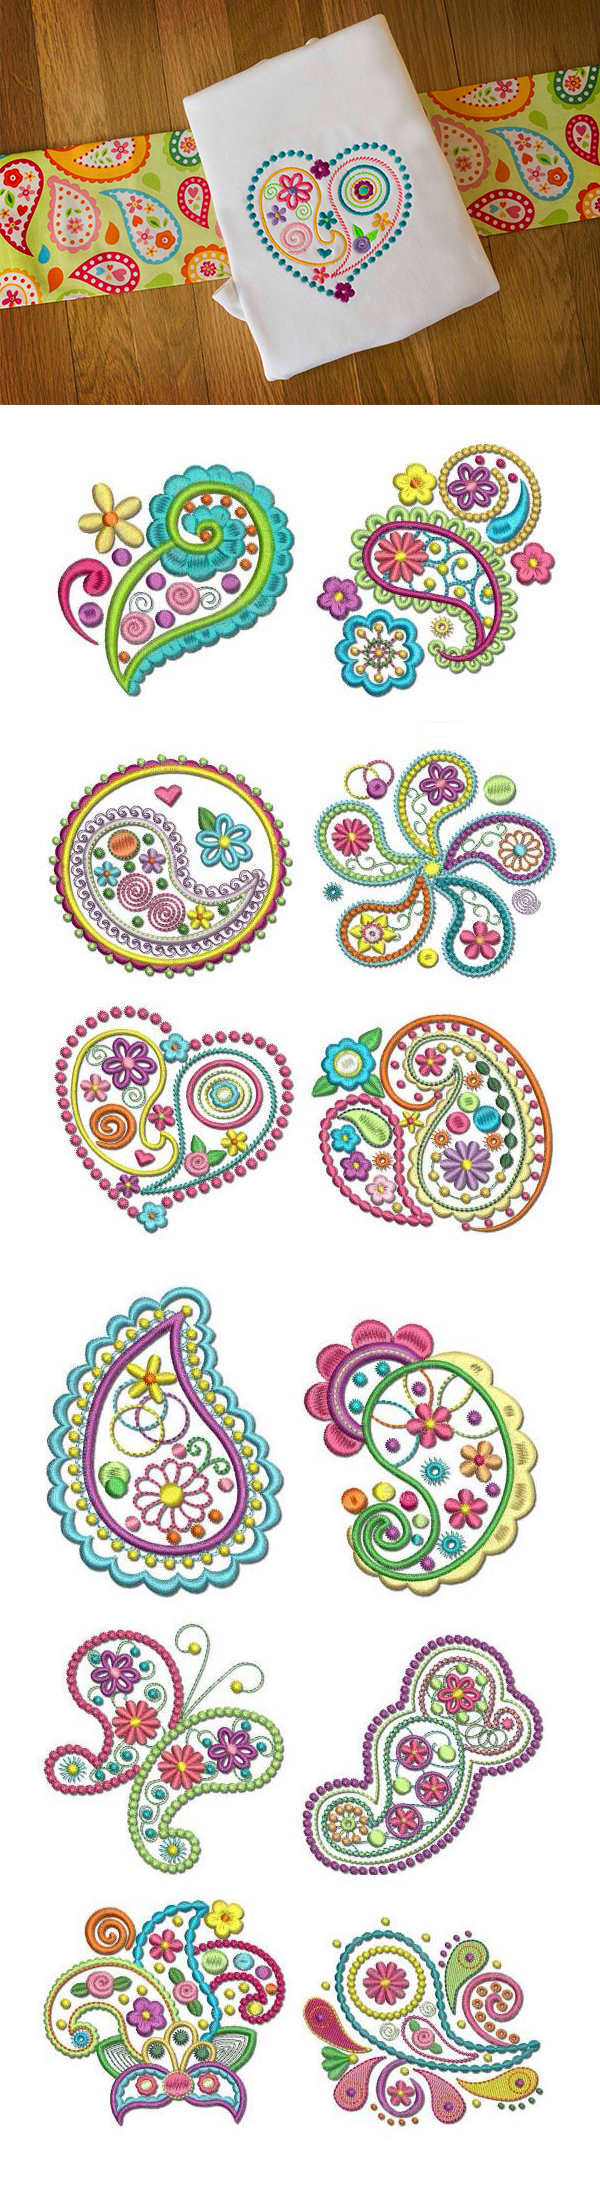 Available in a range of different colour designs instant downloadable - Crazy For Paisley Design Set Is Available For Instant Download At Designsbyjuju Com